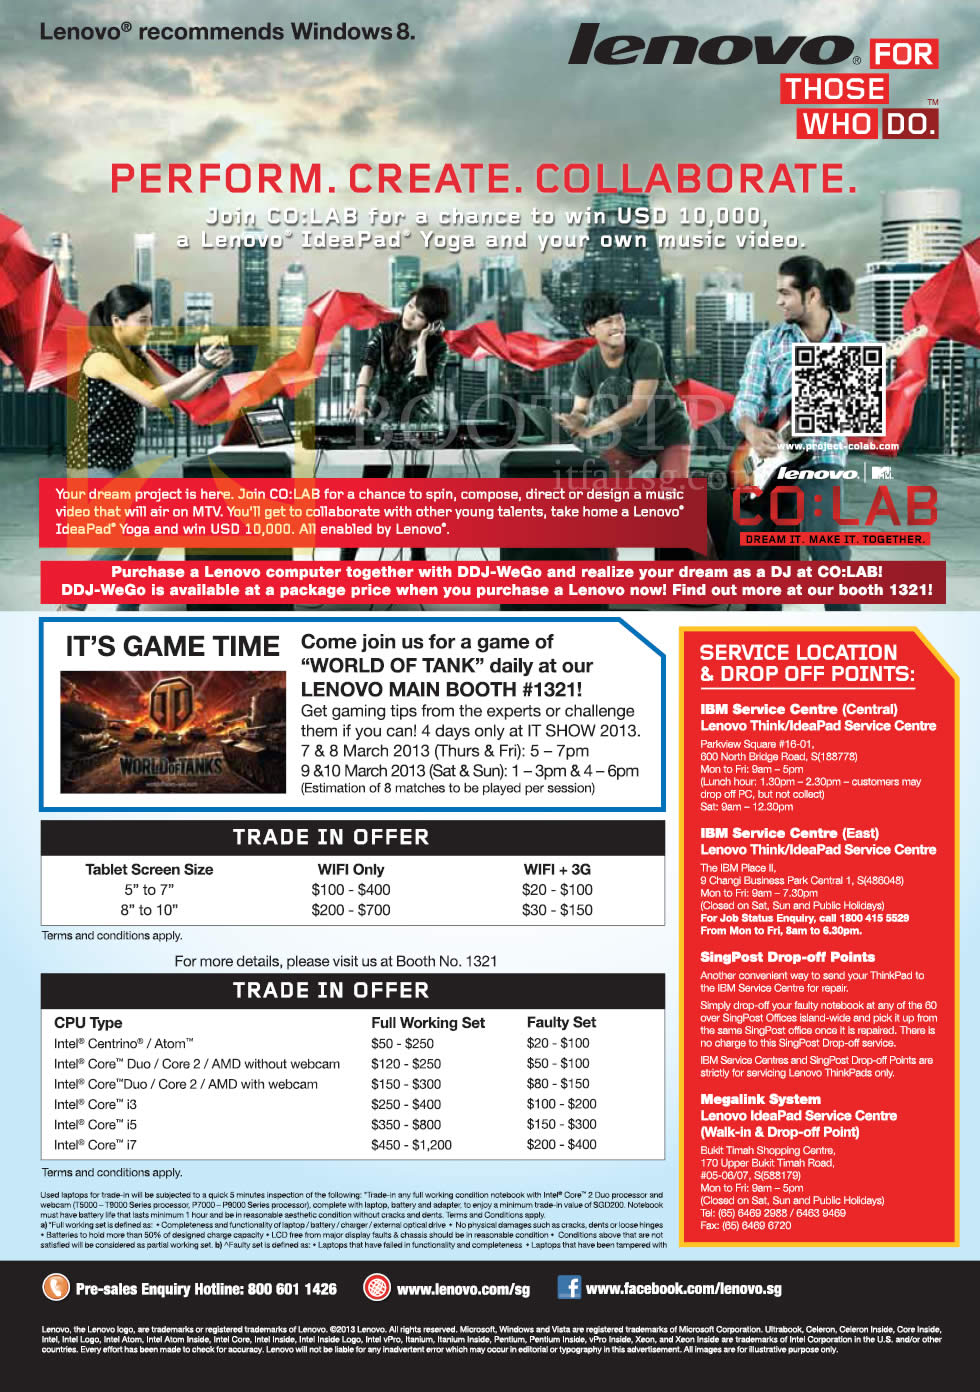 IT SHOW 2013 price list image brochure of Lenovo Notebooks Desktop PC Trade In, Service Centre Locations